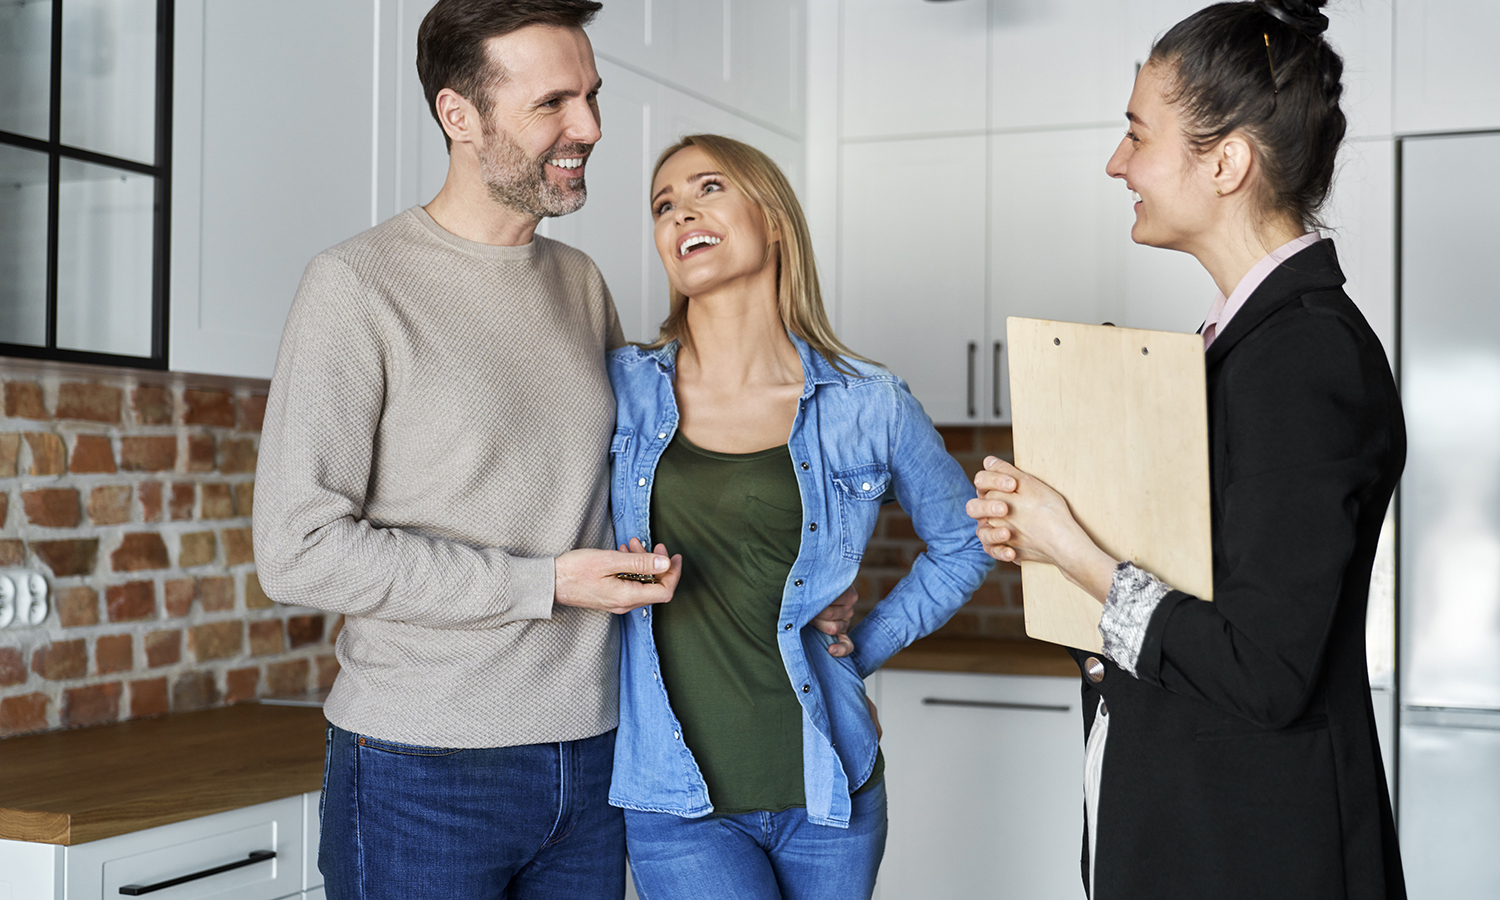 couple excited about selling their house quickly